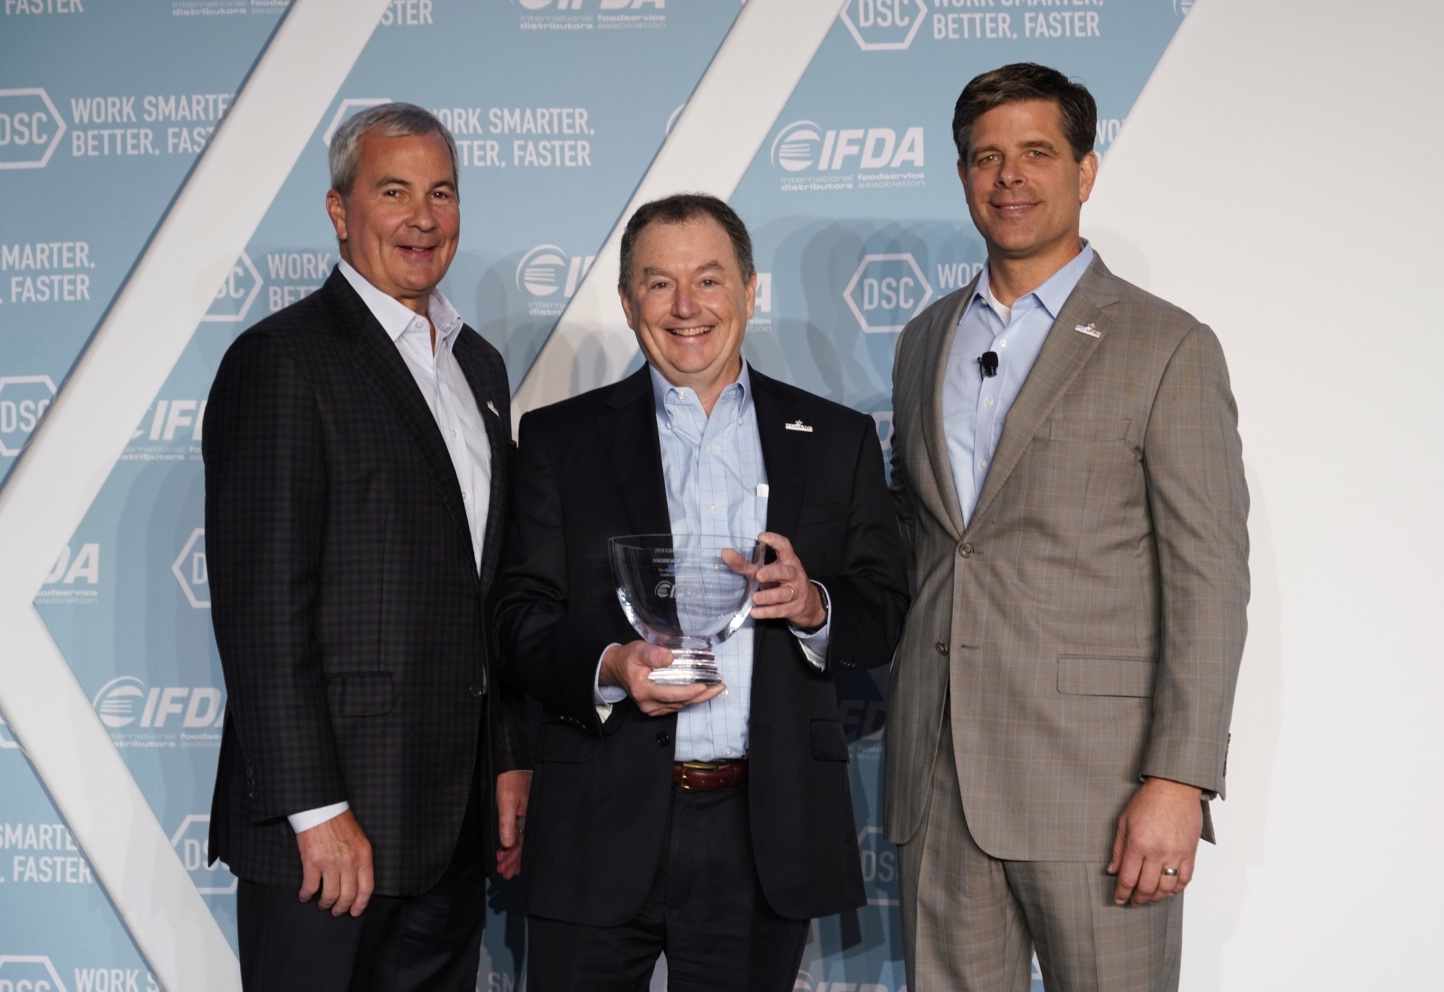 IFDA Announces Andy Mercier of Merchants Foodservice as Winner of the 2019 Cornerstone Award